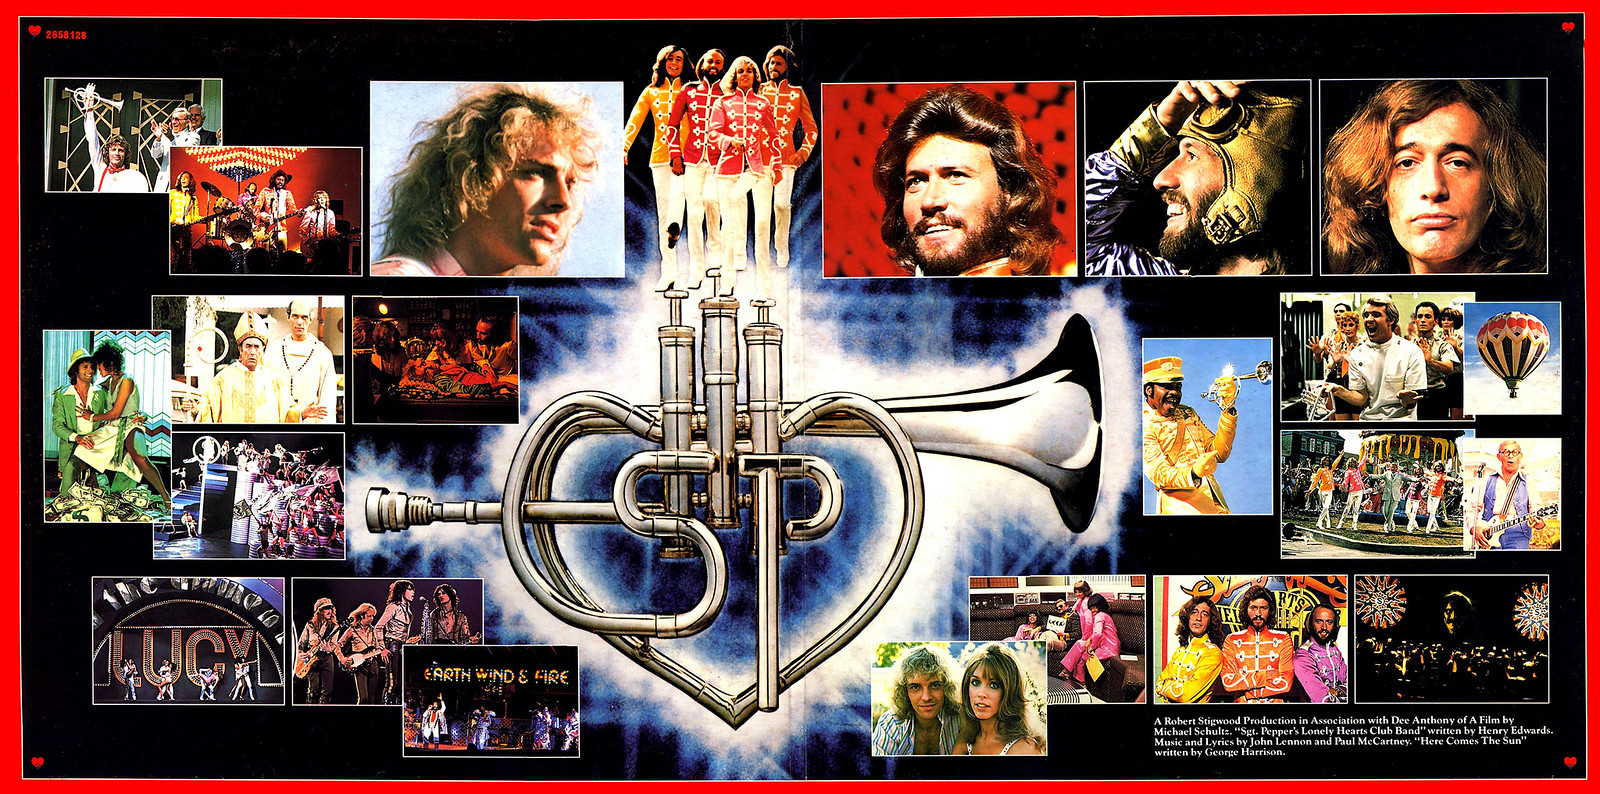 Resultado de imagen de Bee Gees & Peter Frampton Sgt Pepper S Lonely Hearts Club Band Movie